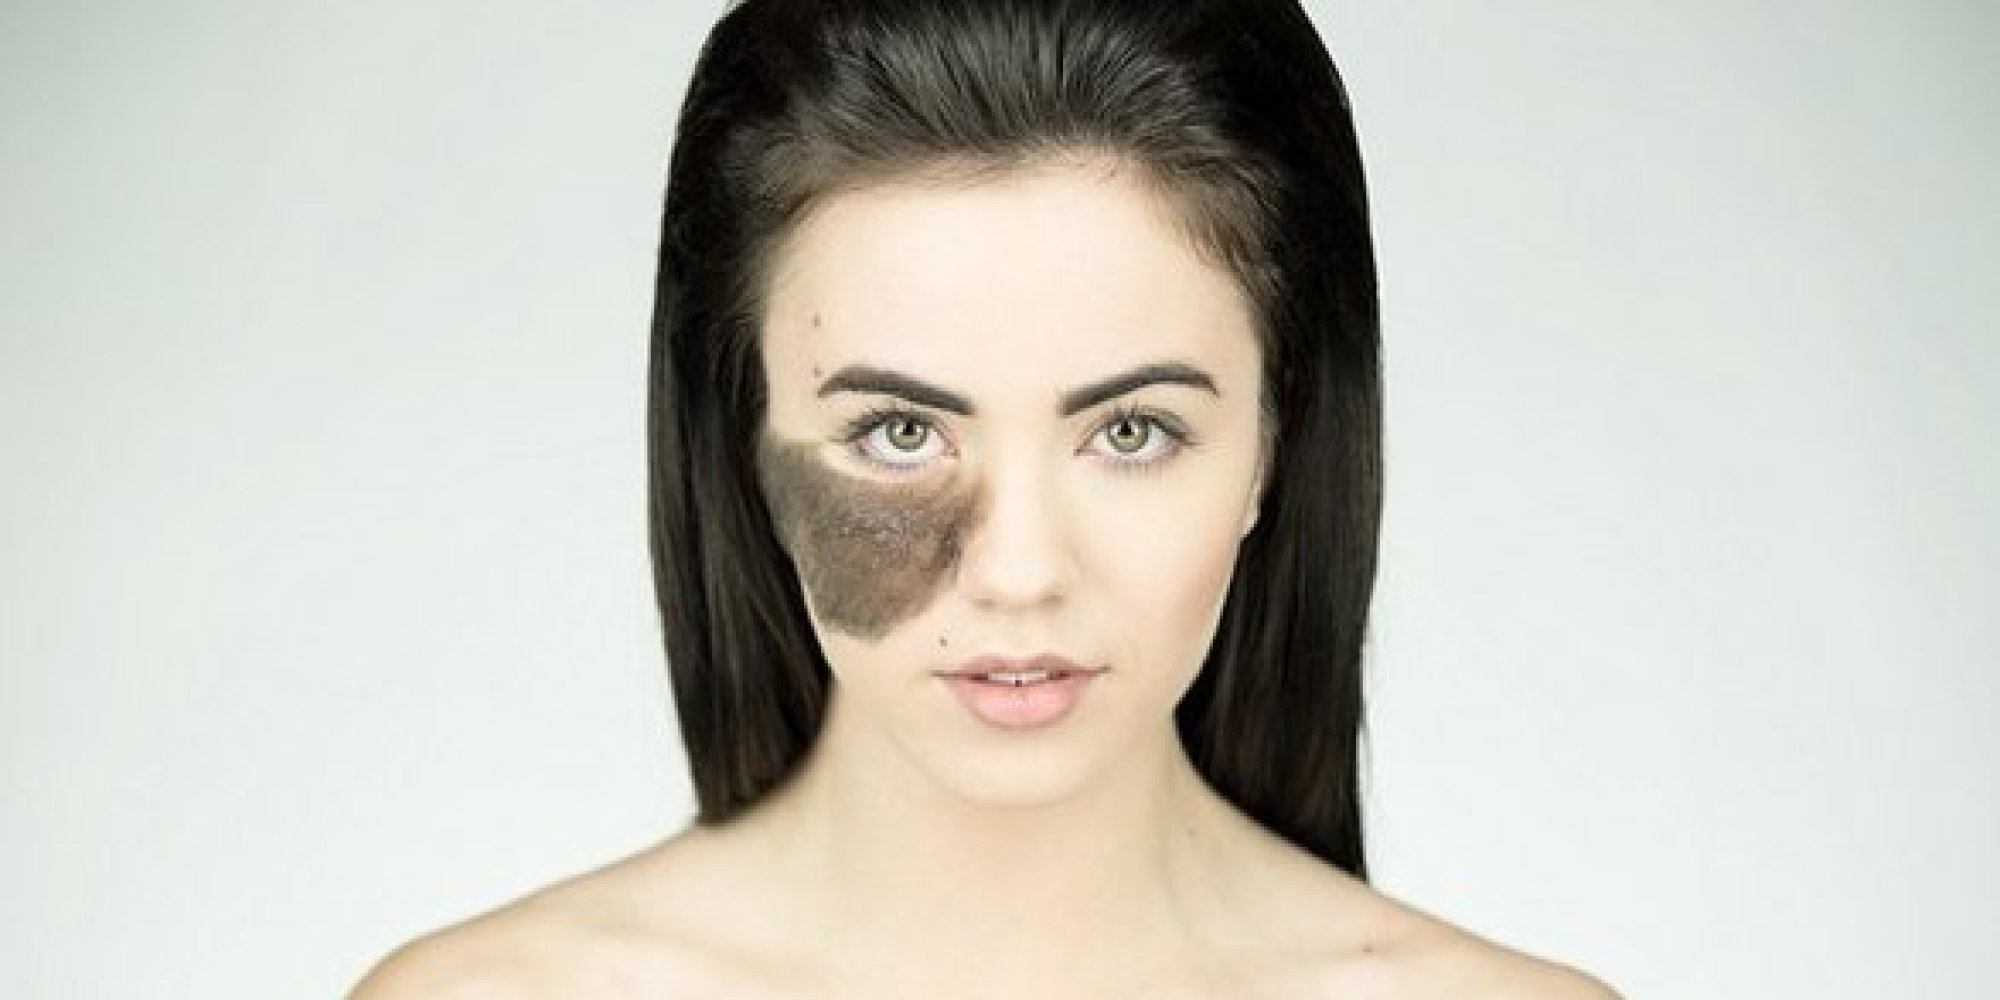 Mongolian Birthmarks Pictures, Removal, Origin, Meaning ...